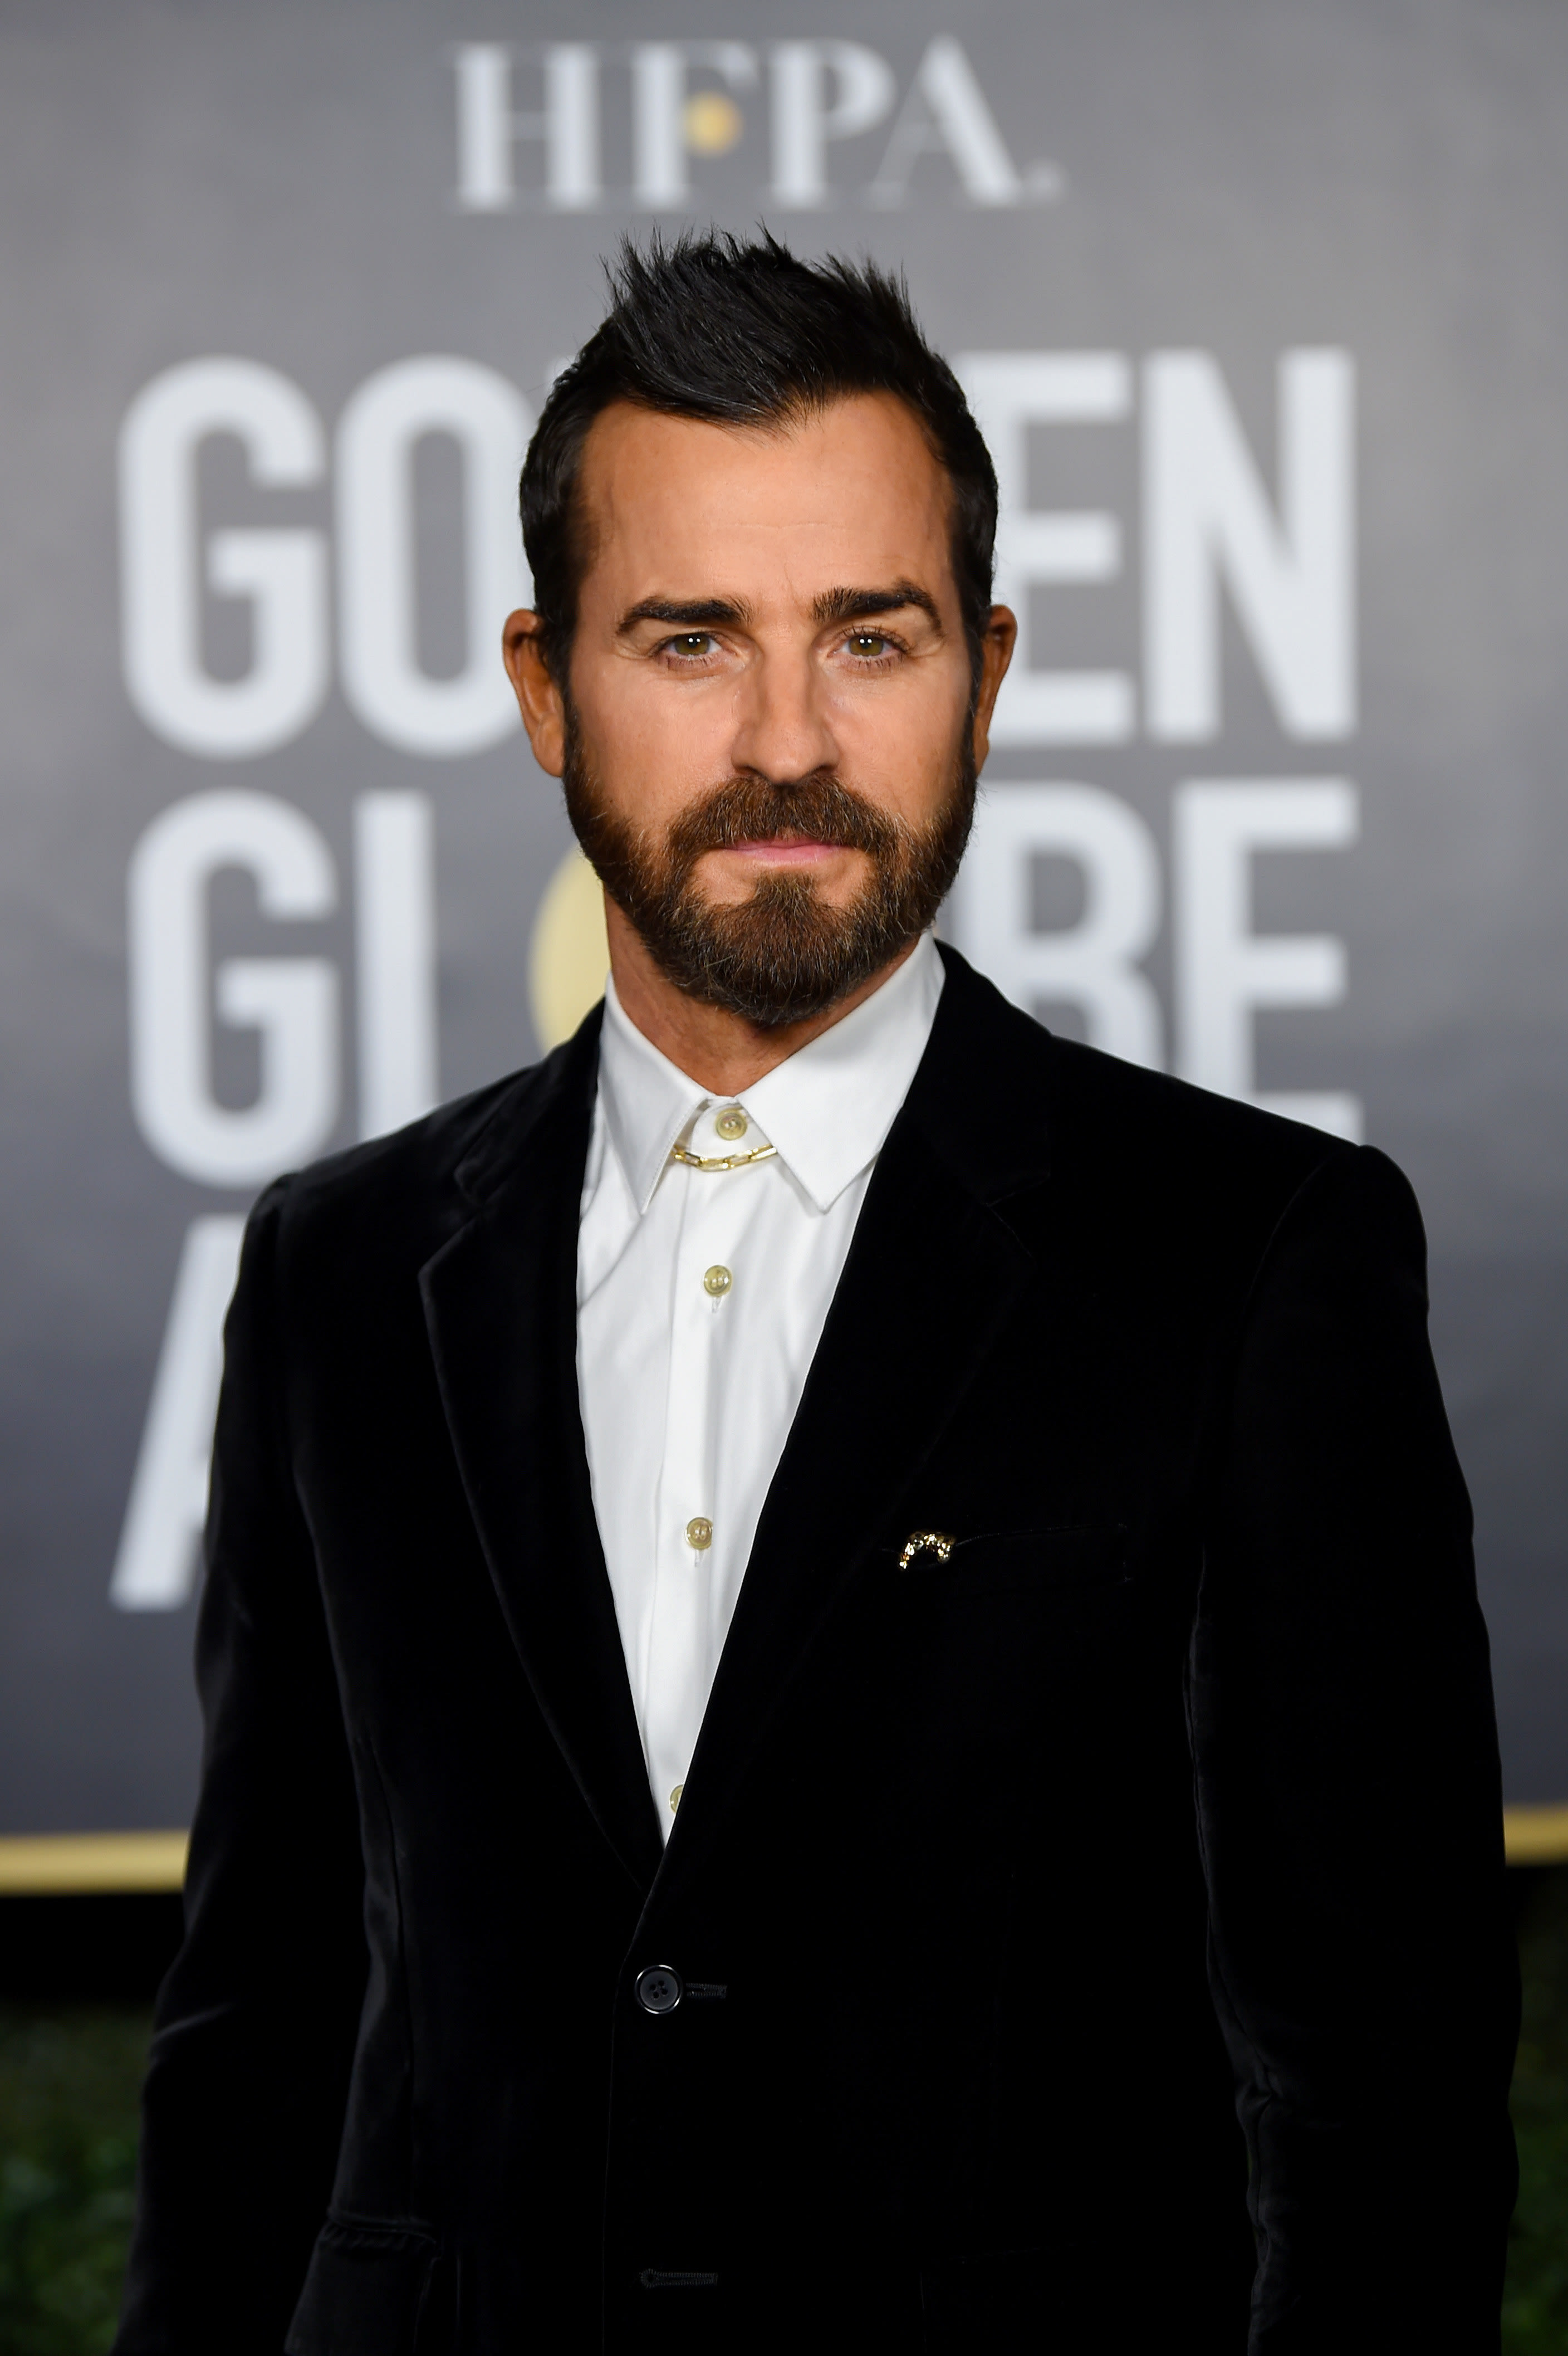 Theroux at the Golden Globe Awards in 2021